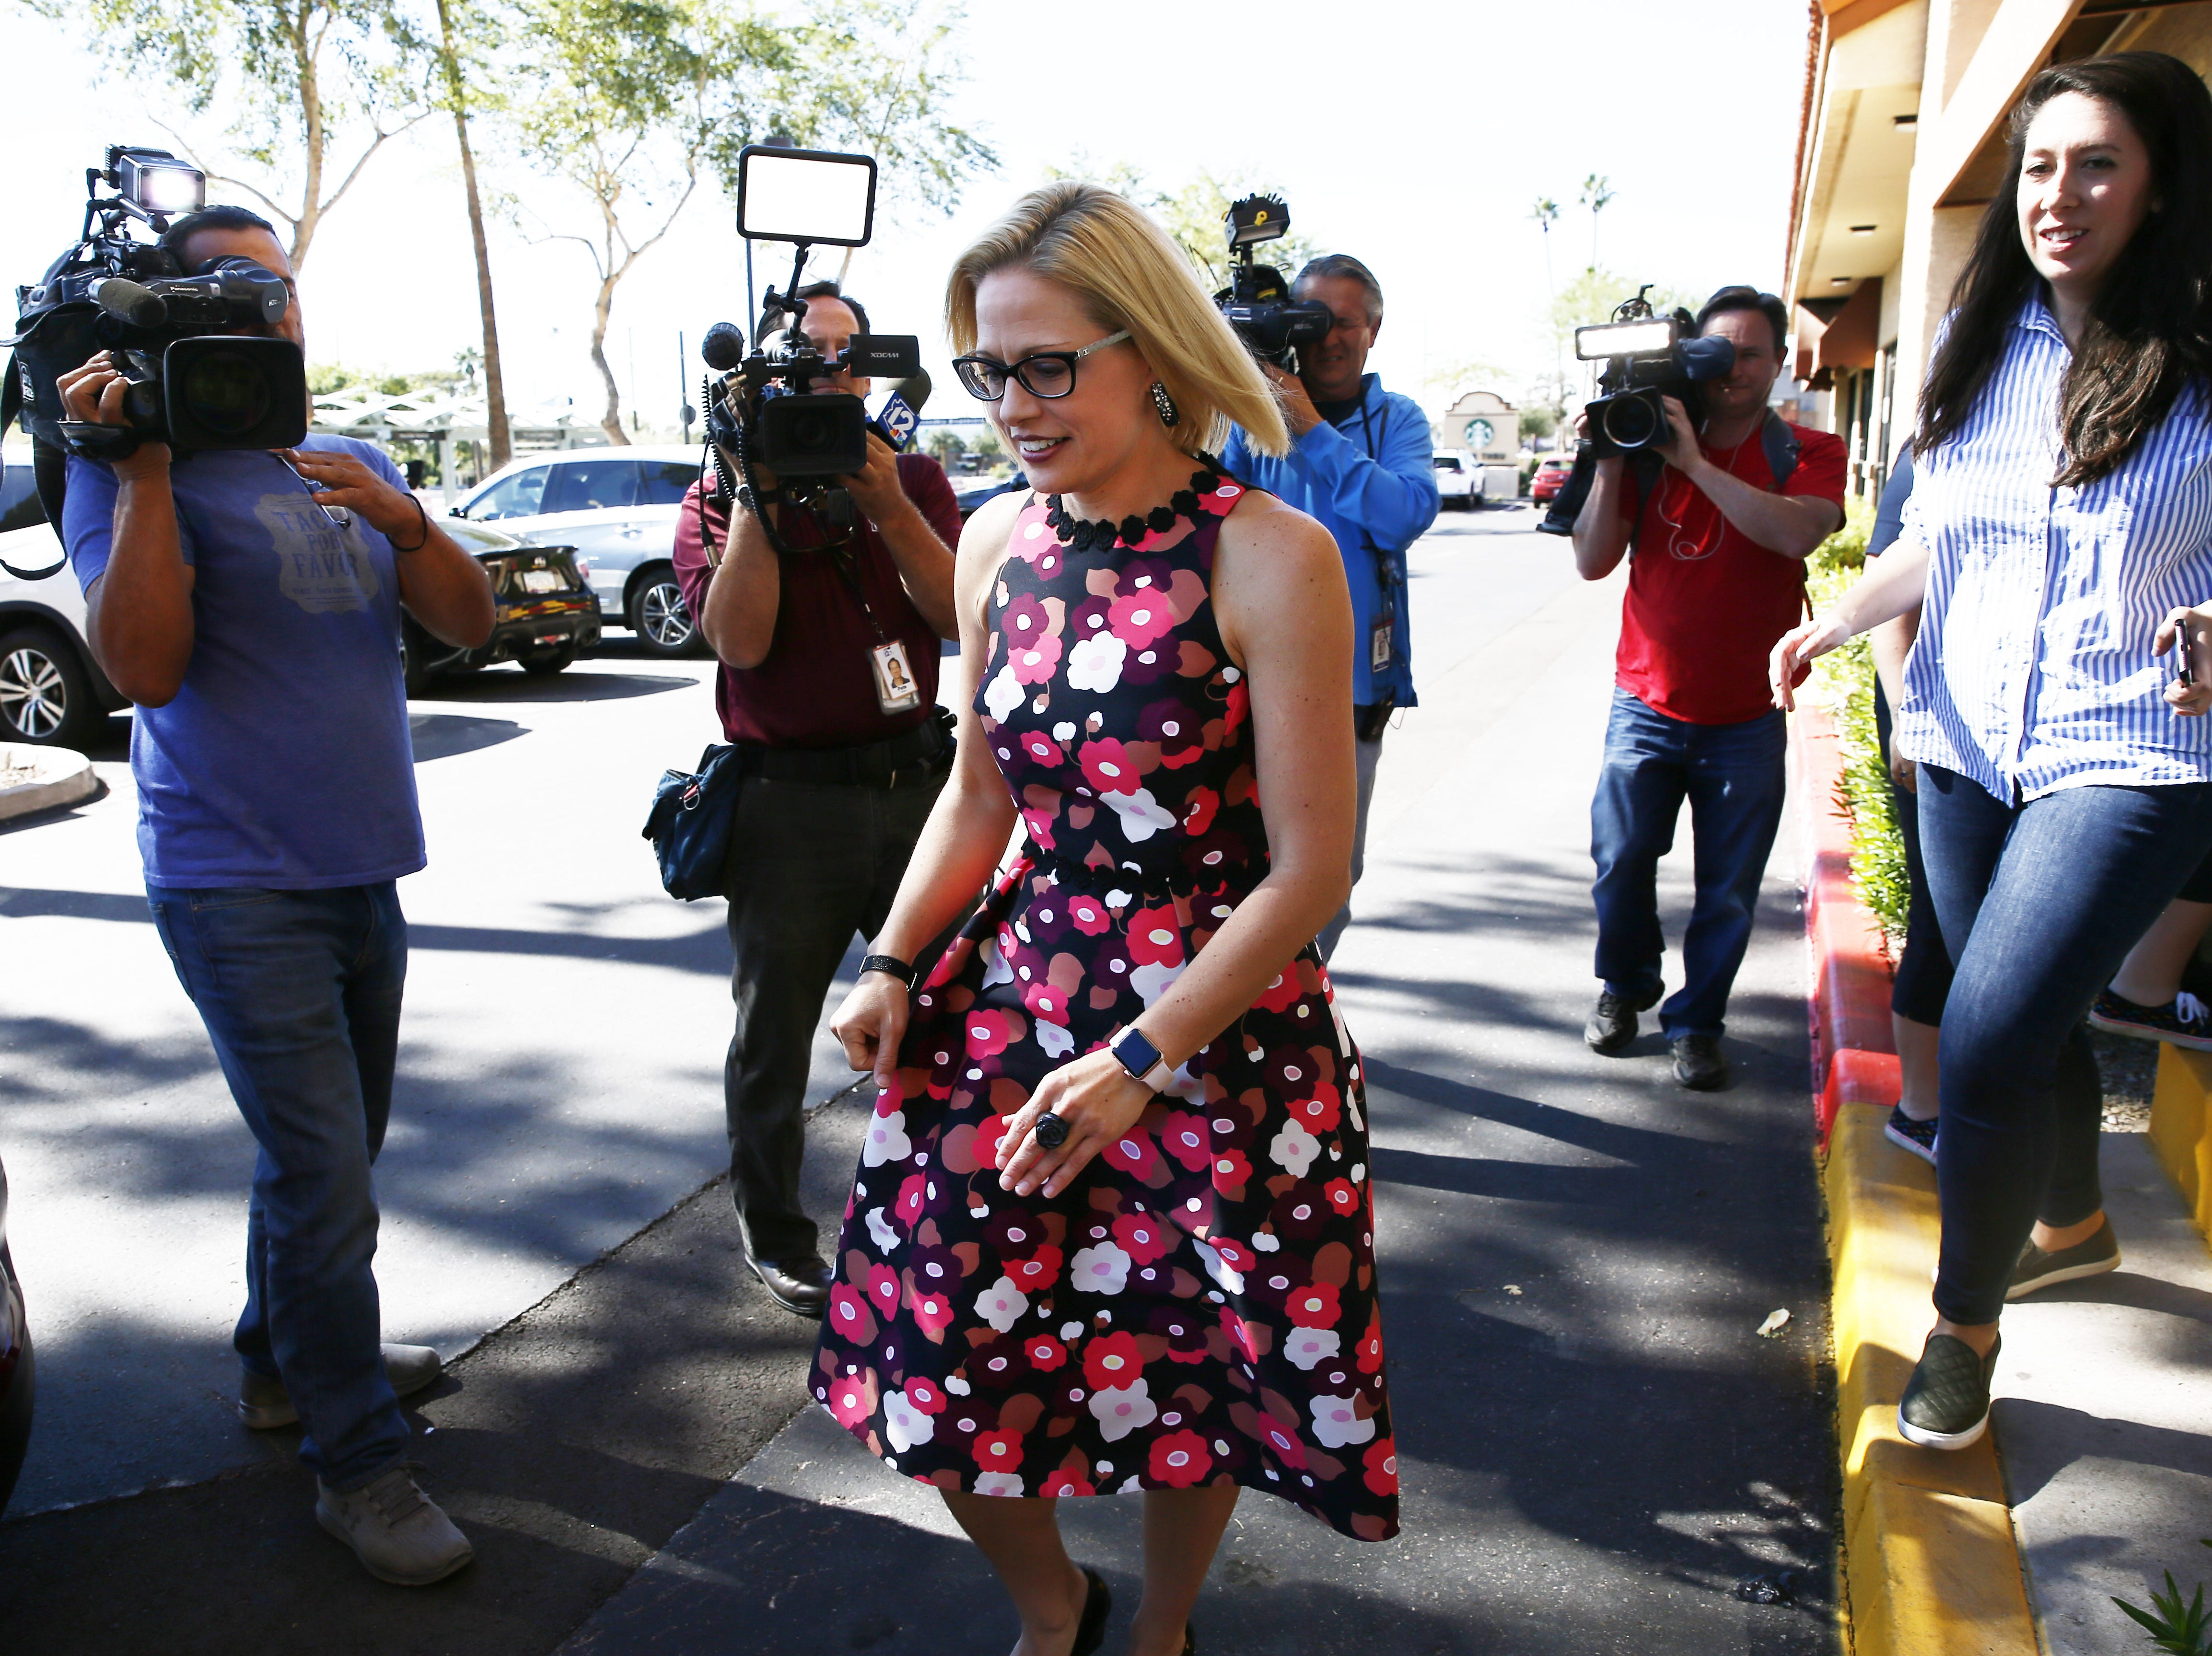 Kyrsten Sinema, the Democratic candidate for the U.S. Senate leaves her get-out-the-vote event with members of the Veterans for Sinema coalition and volunteers on Nov. 1 in Phoenix.